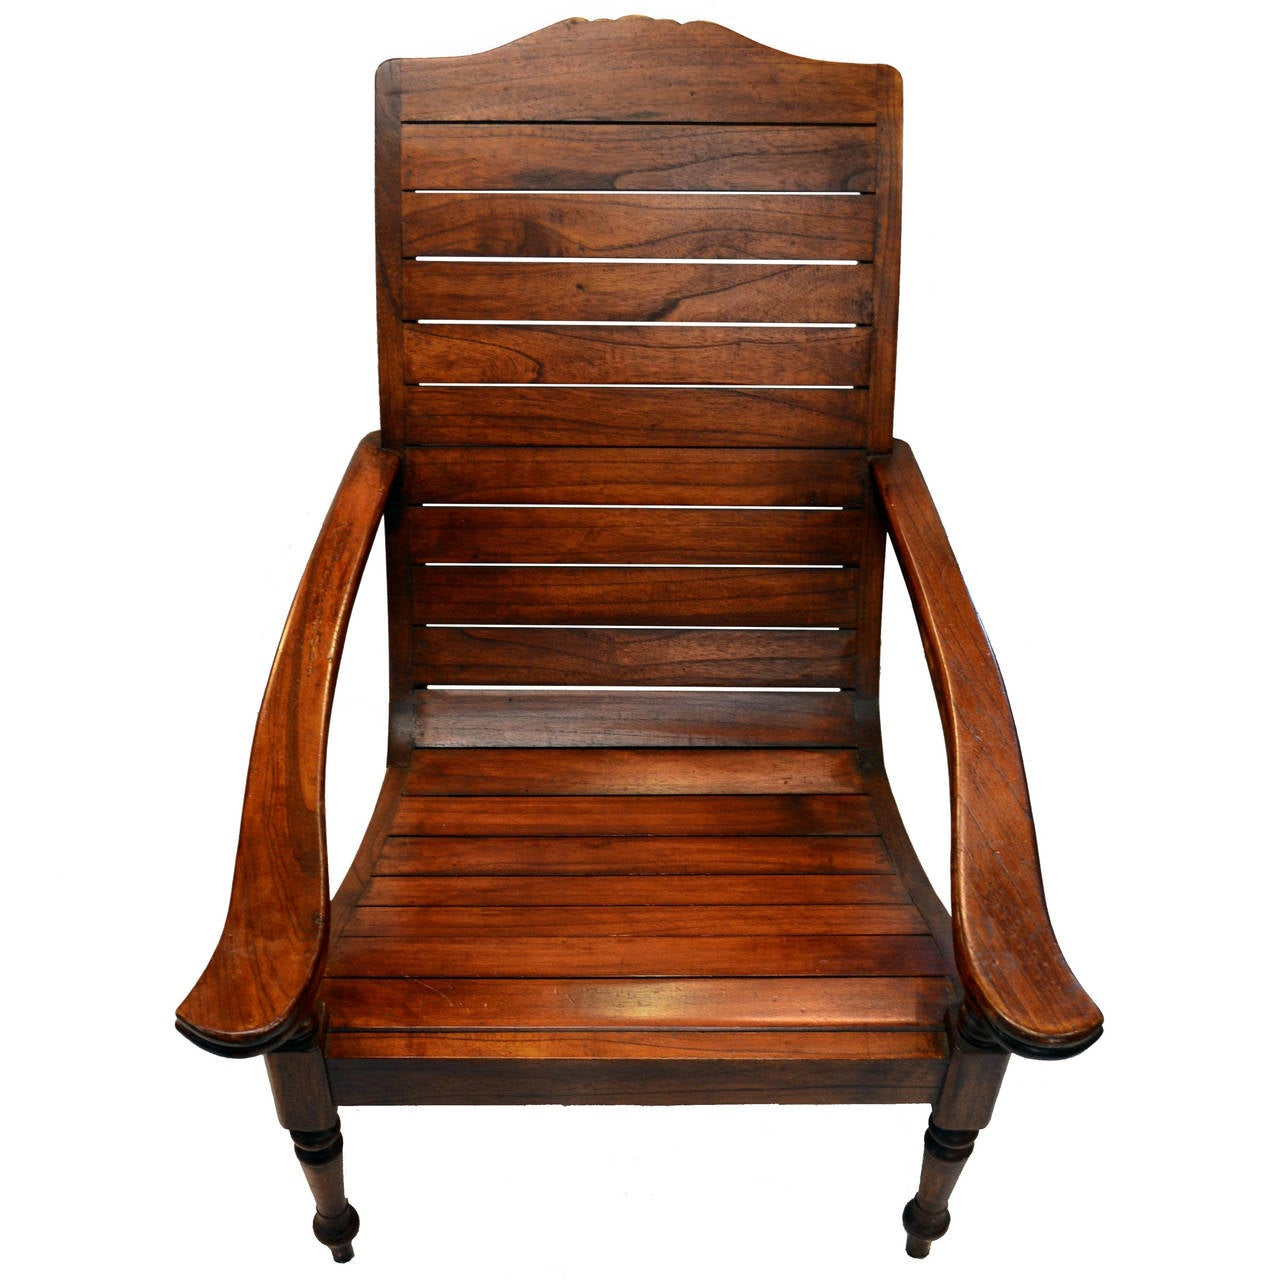 plantation style chairs oak for sale chair with swivel out footrests at 1stdibs